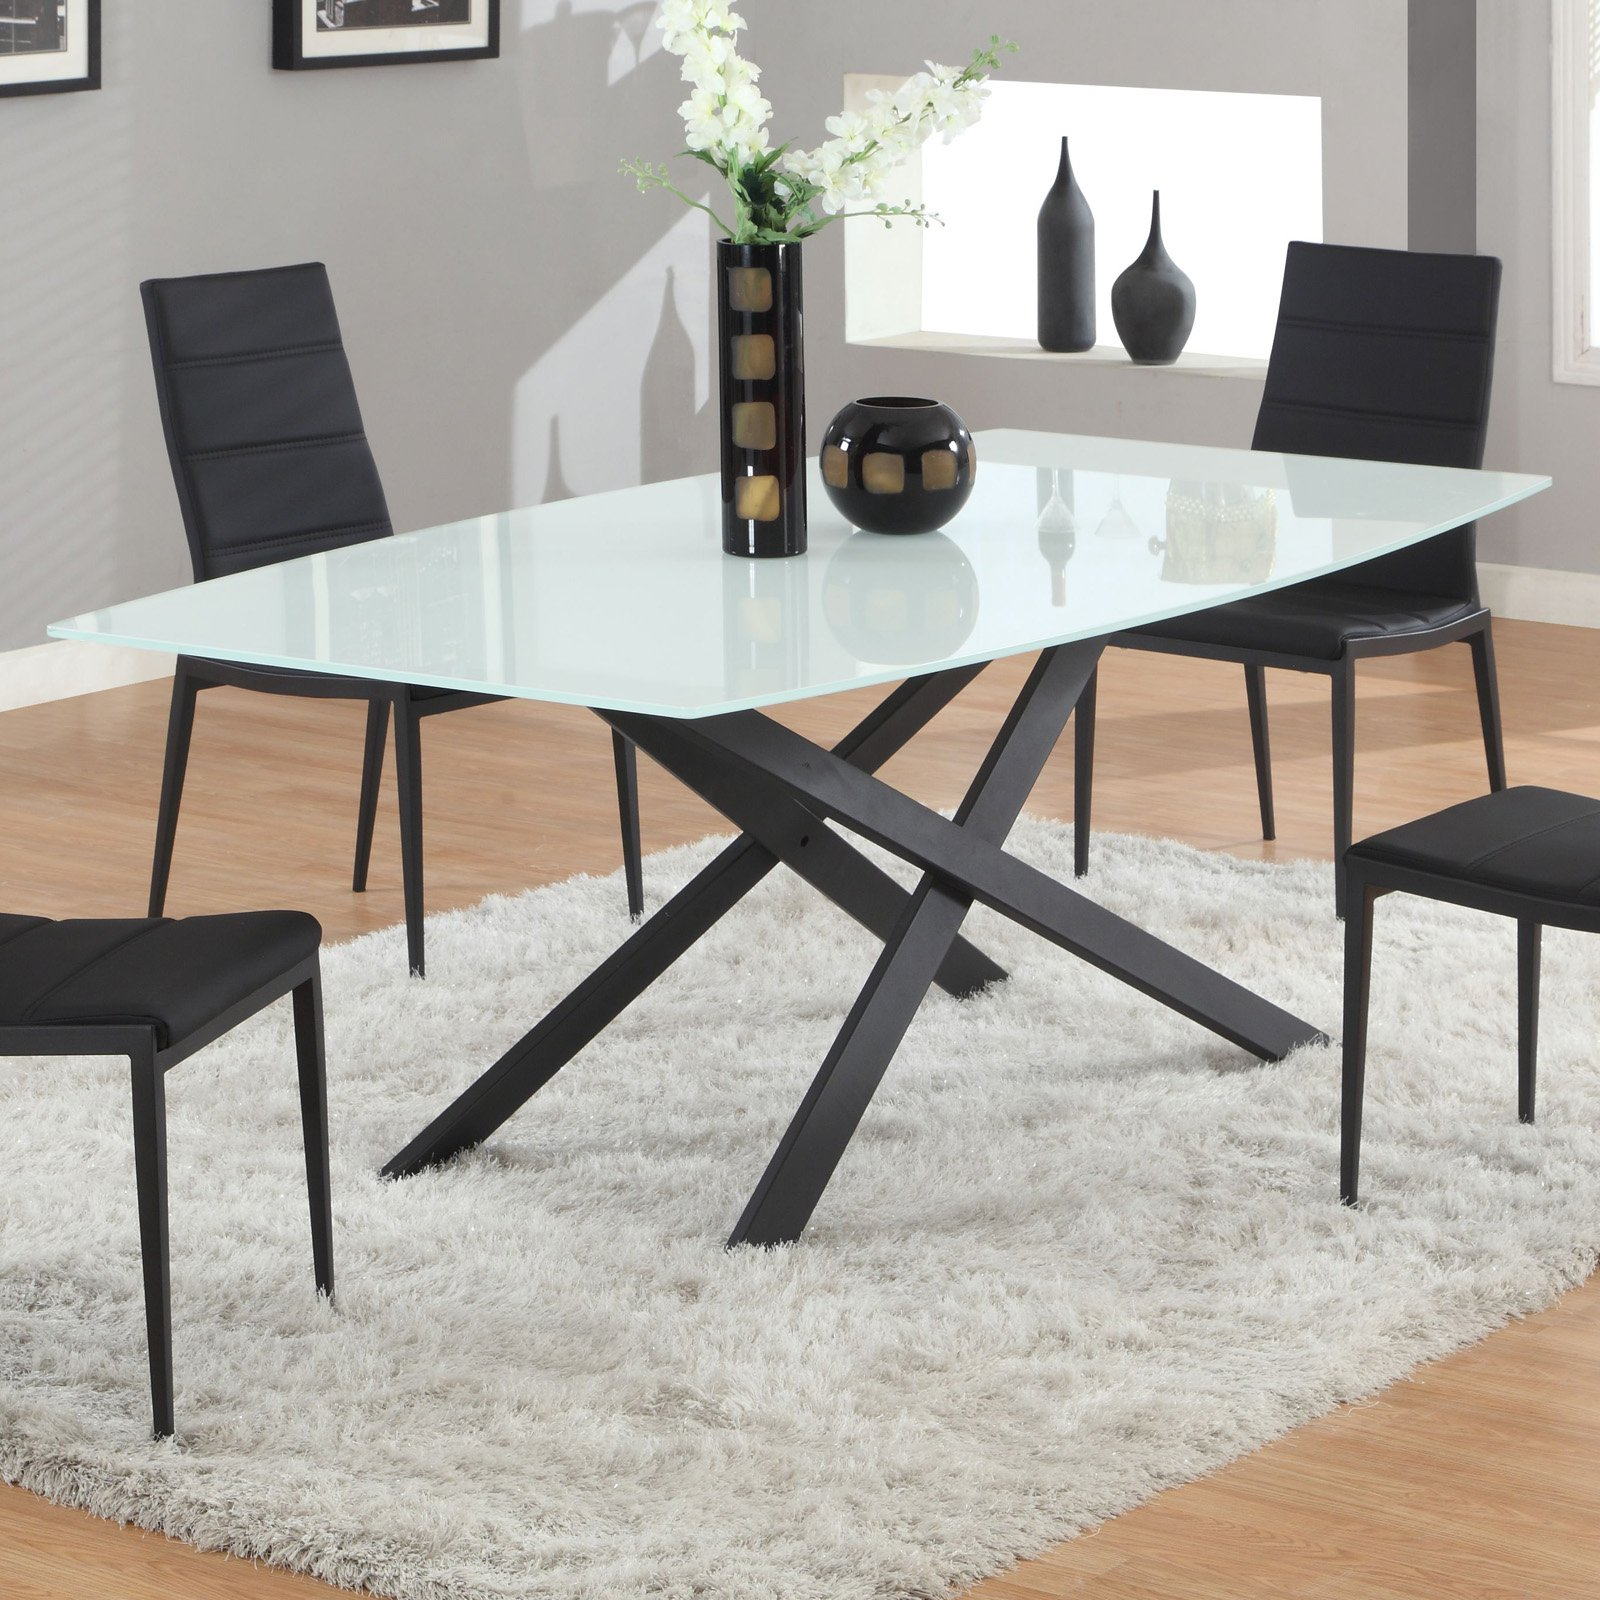 Jackie Glass Chintaly Jackie Glass Dining Table